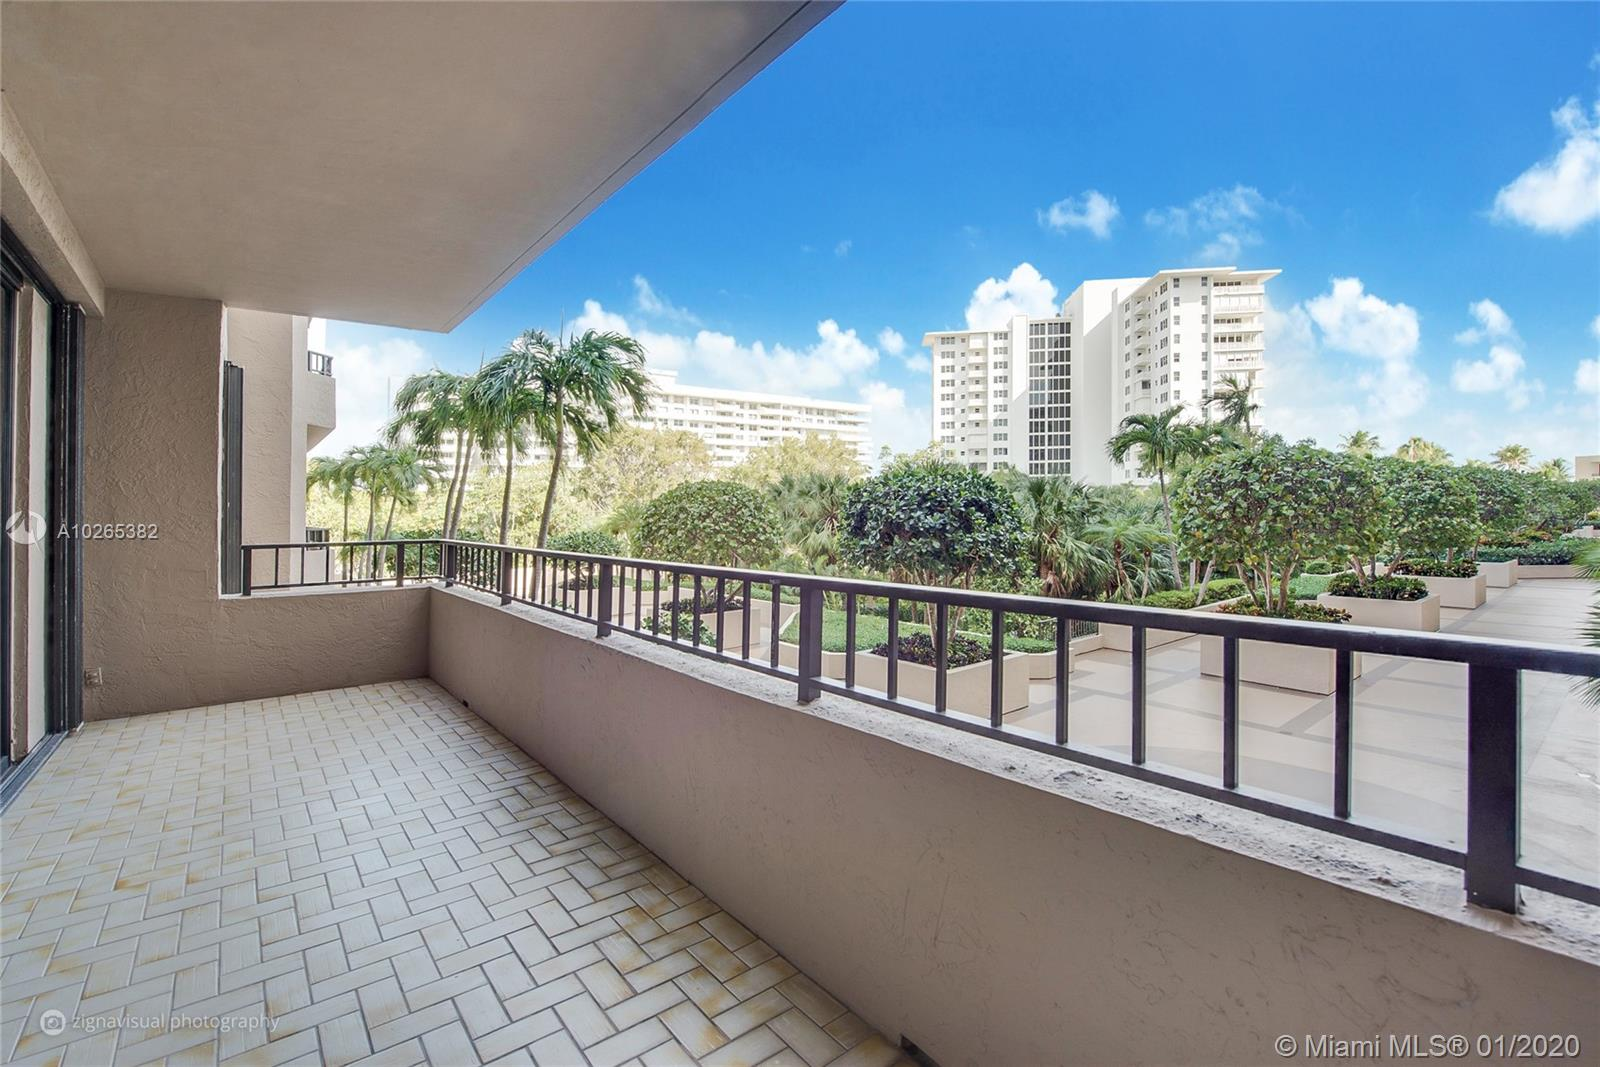 251  Crandon Blvd #205 For Sale A10265382, FL